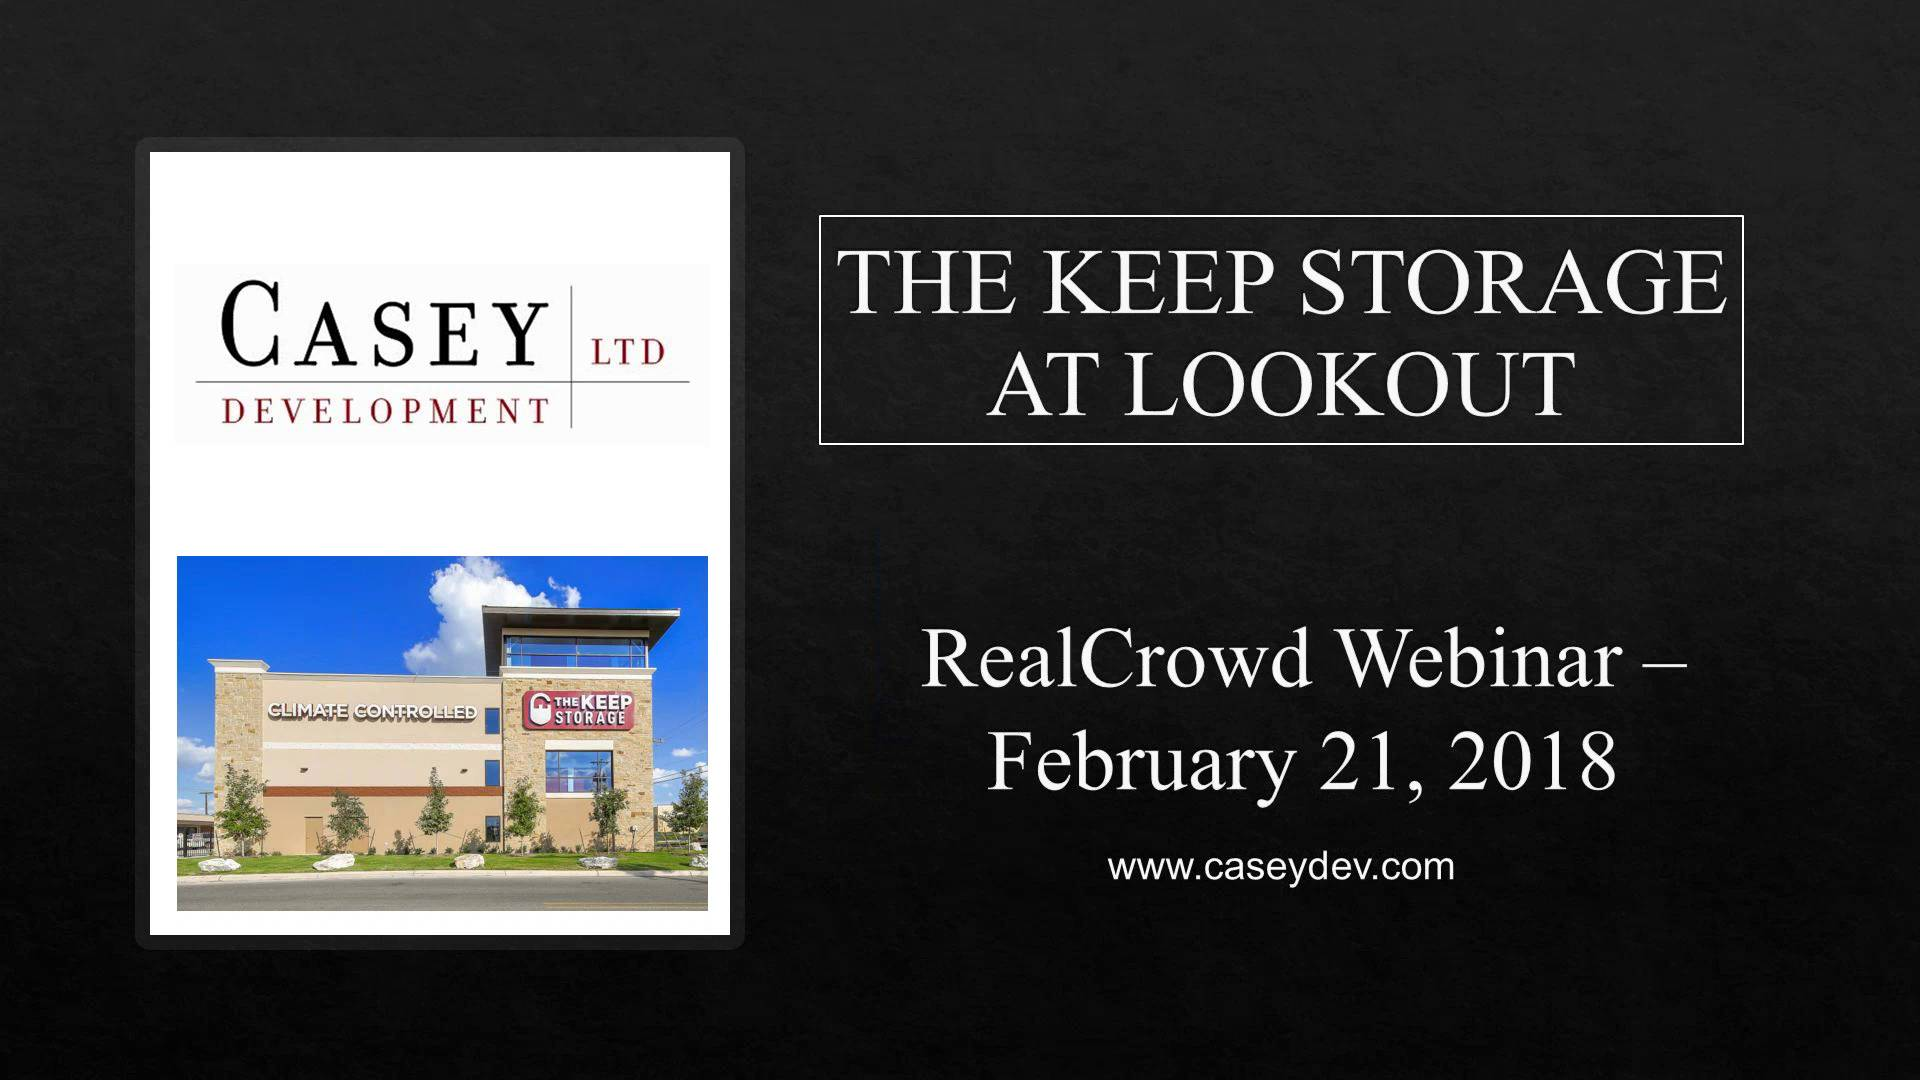 Investment Video - The Keep Storage at Lookout